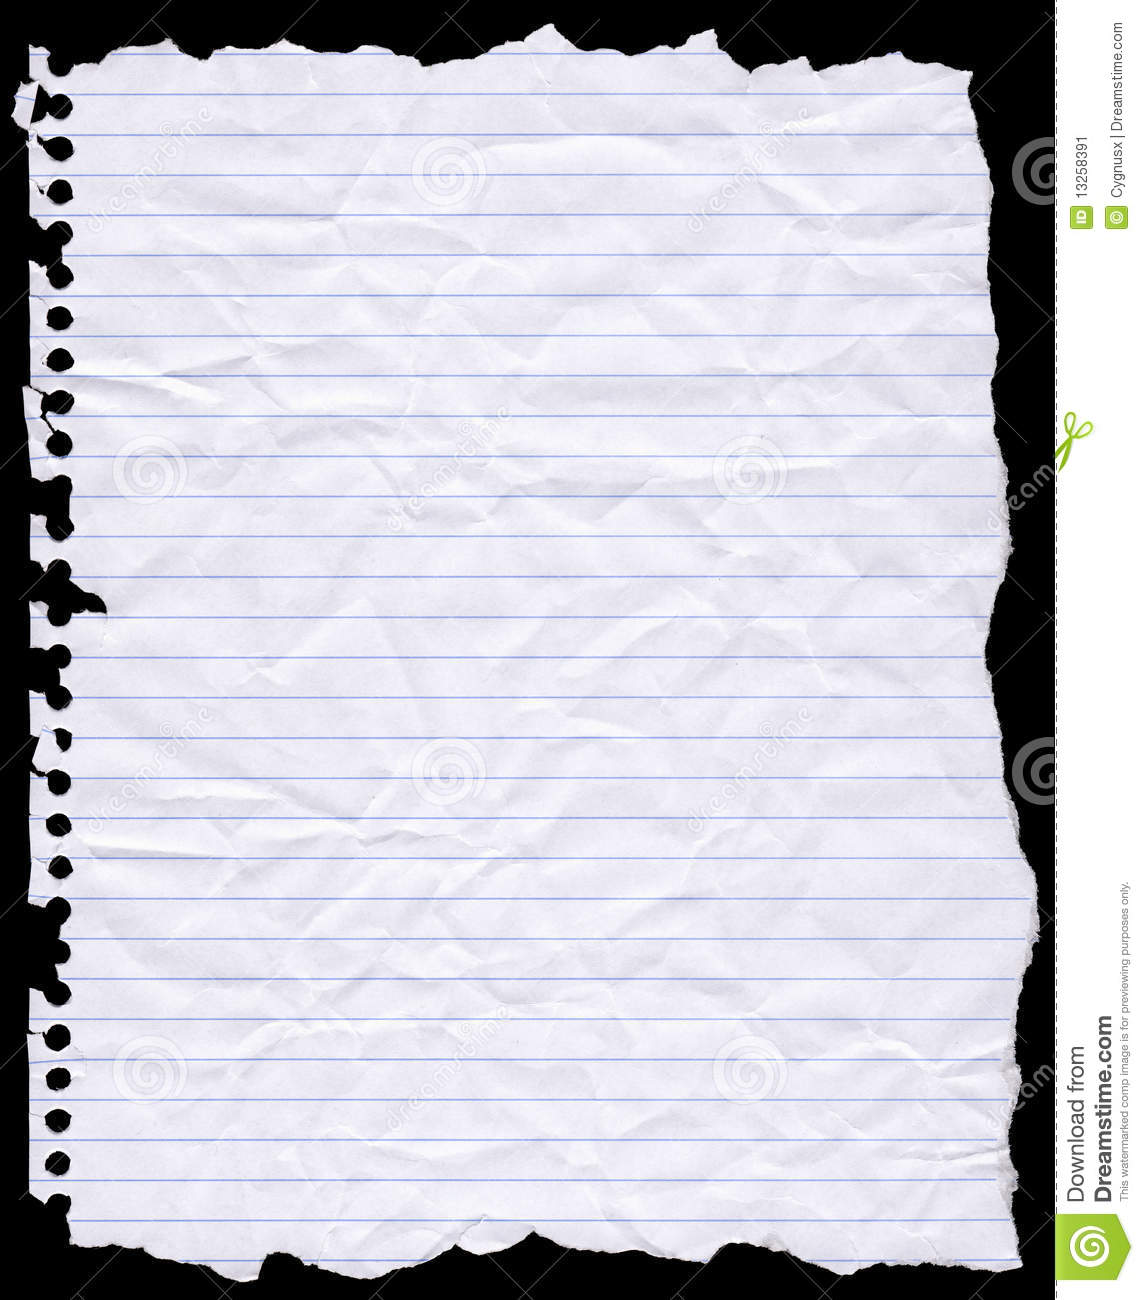 torn hole punched writing paper stock photo 13258391 - megapixl